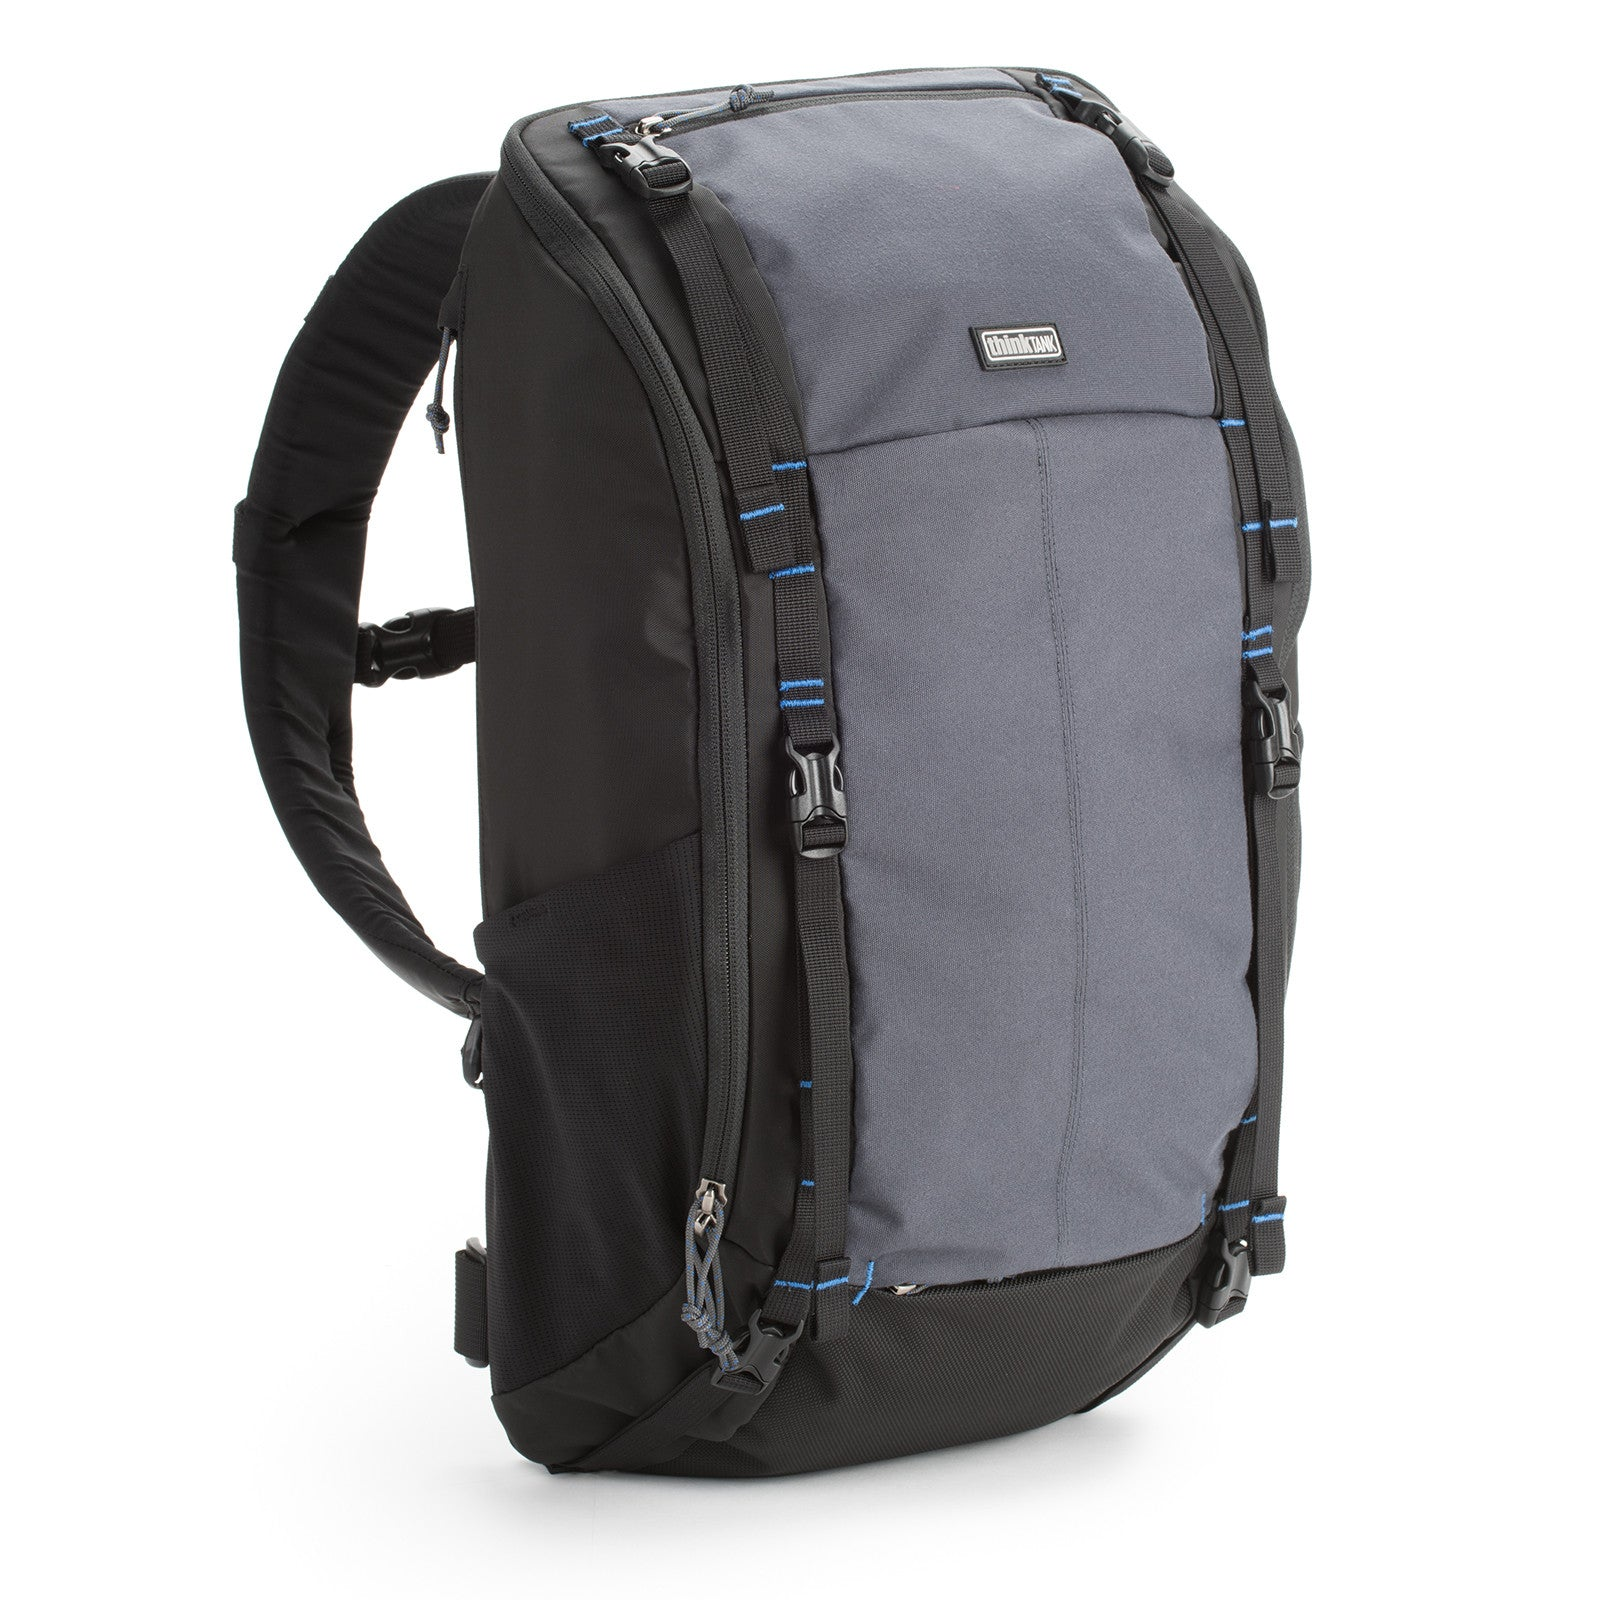 d9012cabe5 FPV Session Backpack with Laptop Compartment FPV Session Backpack with  Laptop Compartment